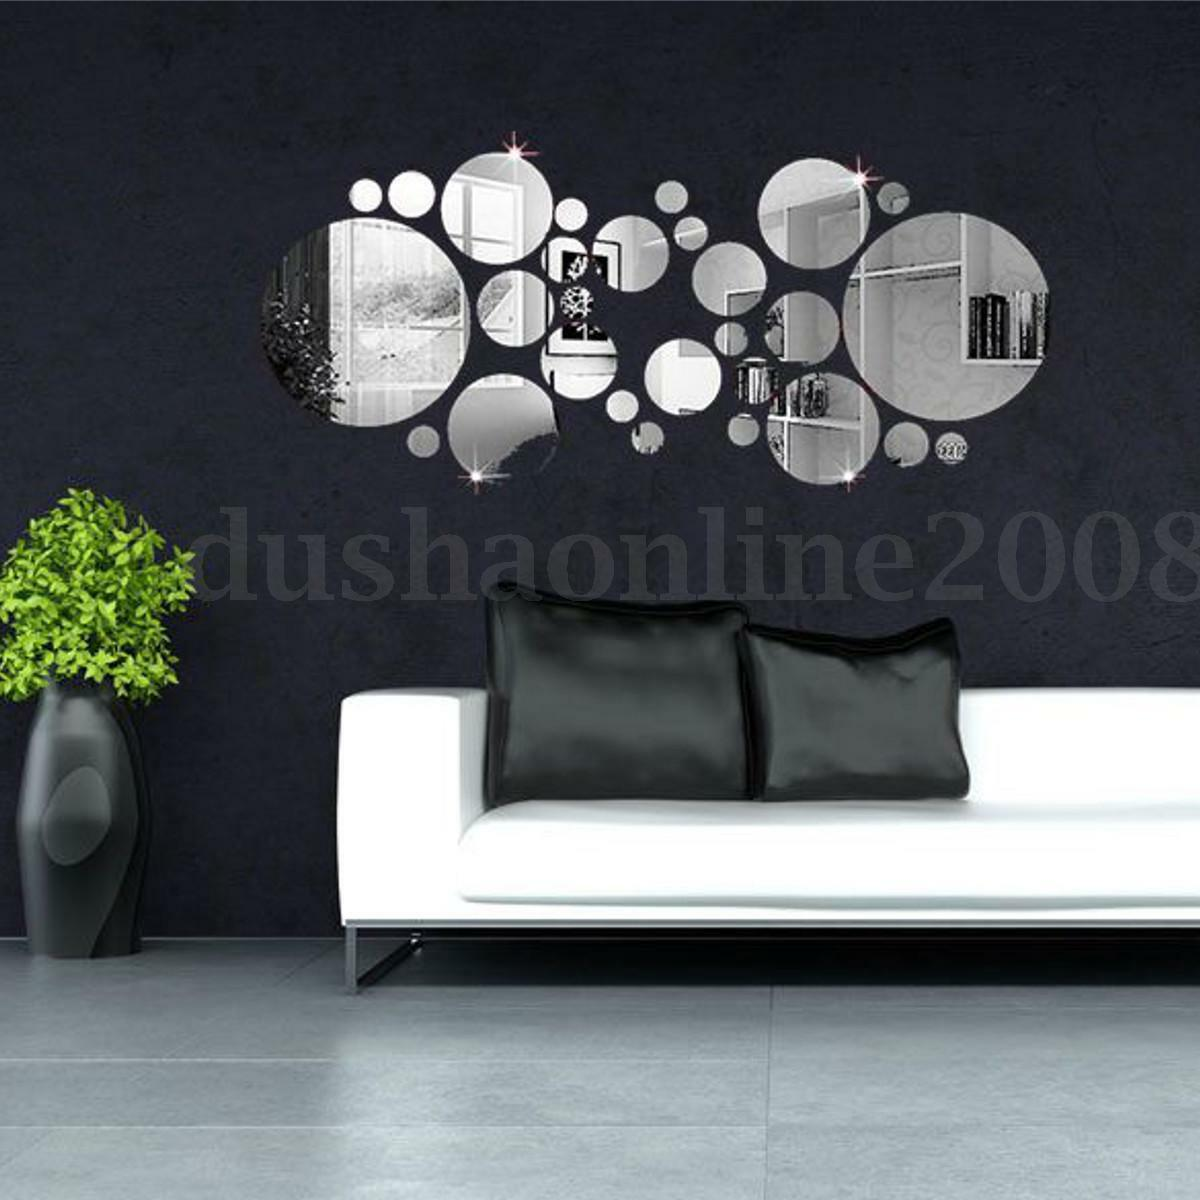 30x 3d cercle sticker autocollant miroir adh sif diy art for Decor mural adhesif